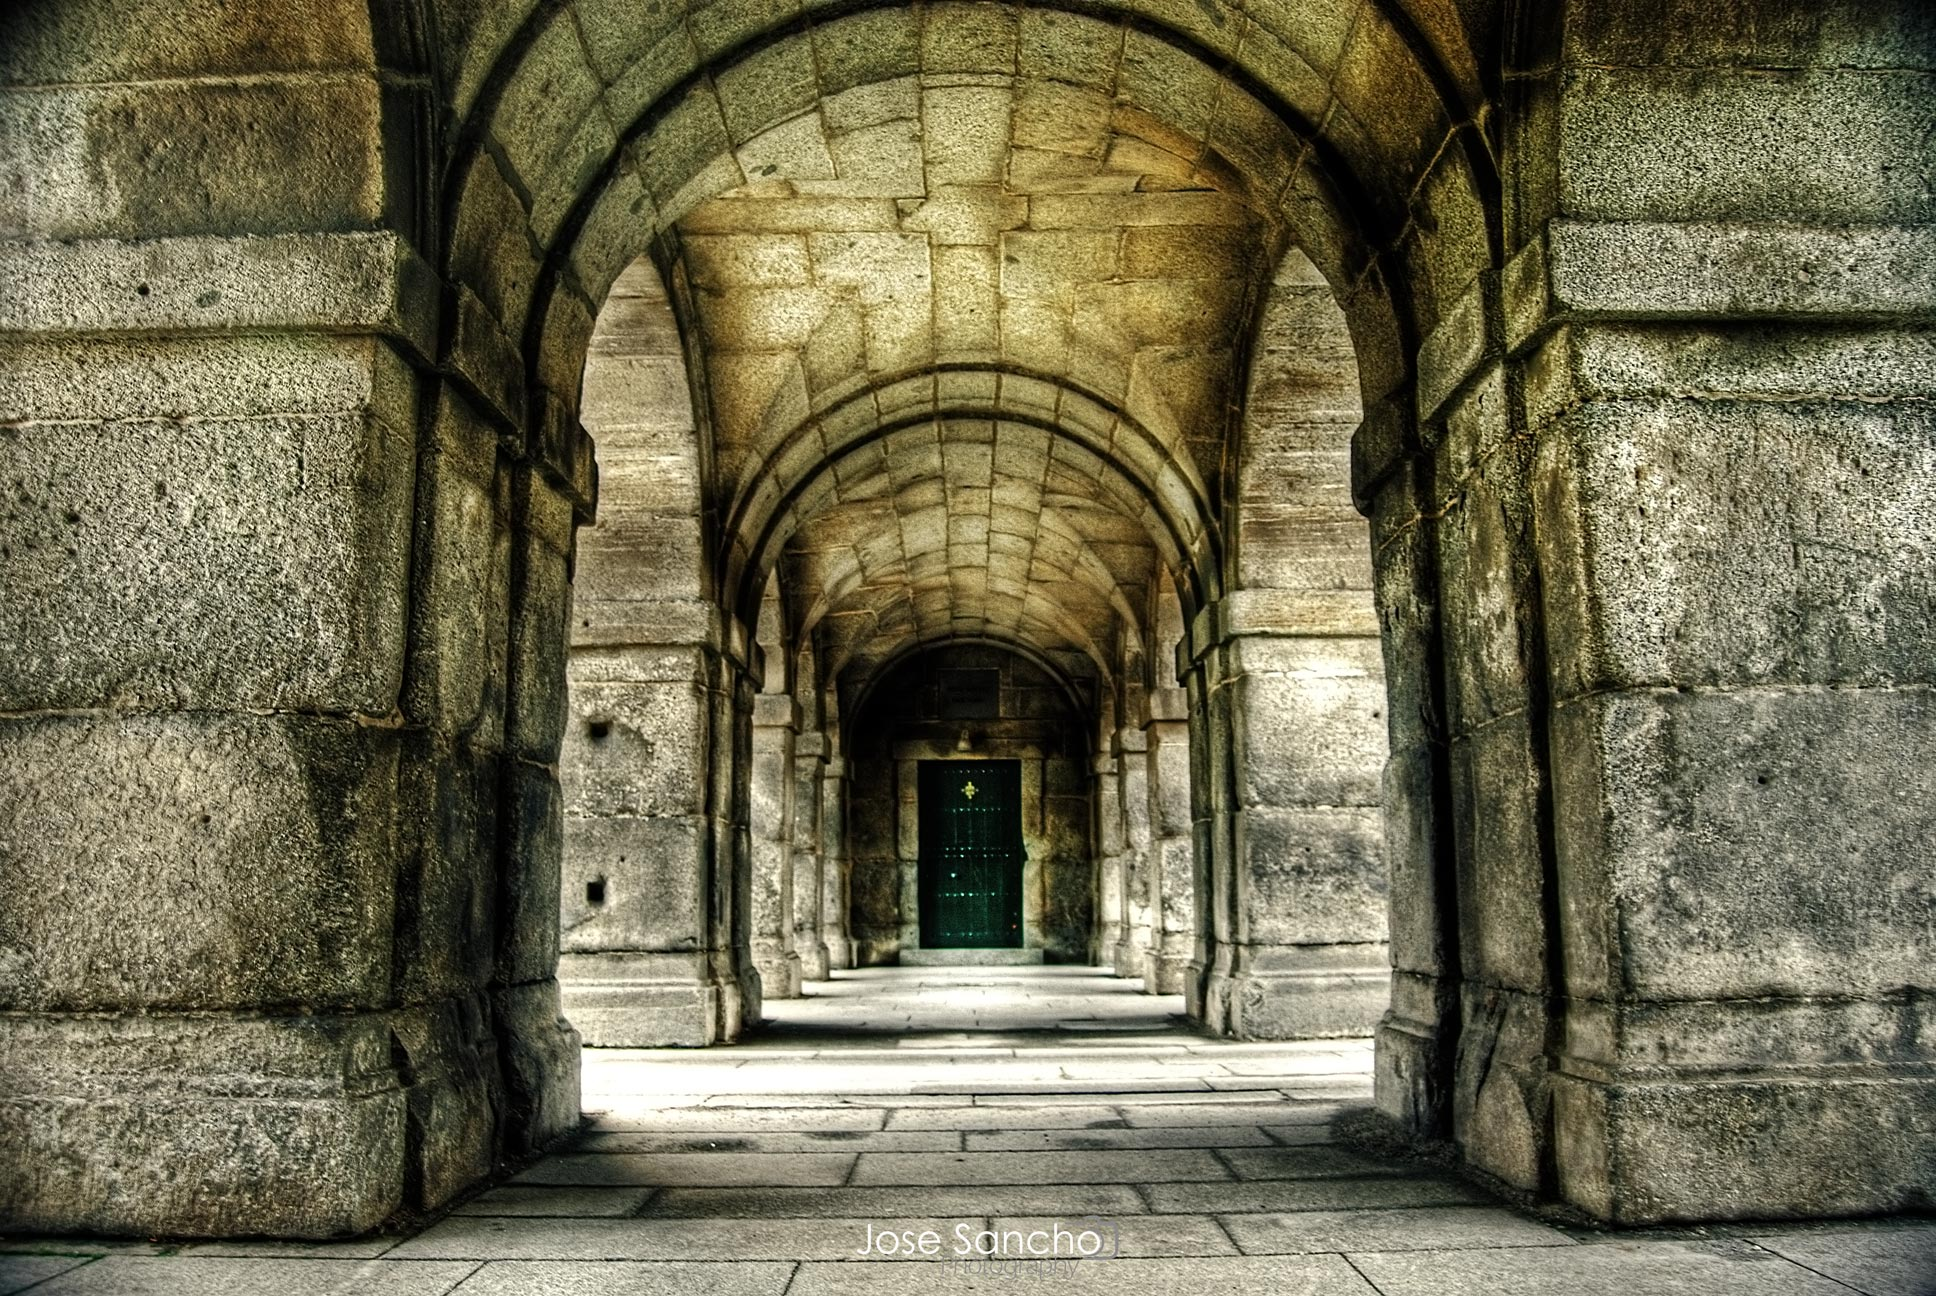 El Escorial - Jose Sancho Photography